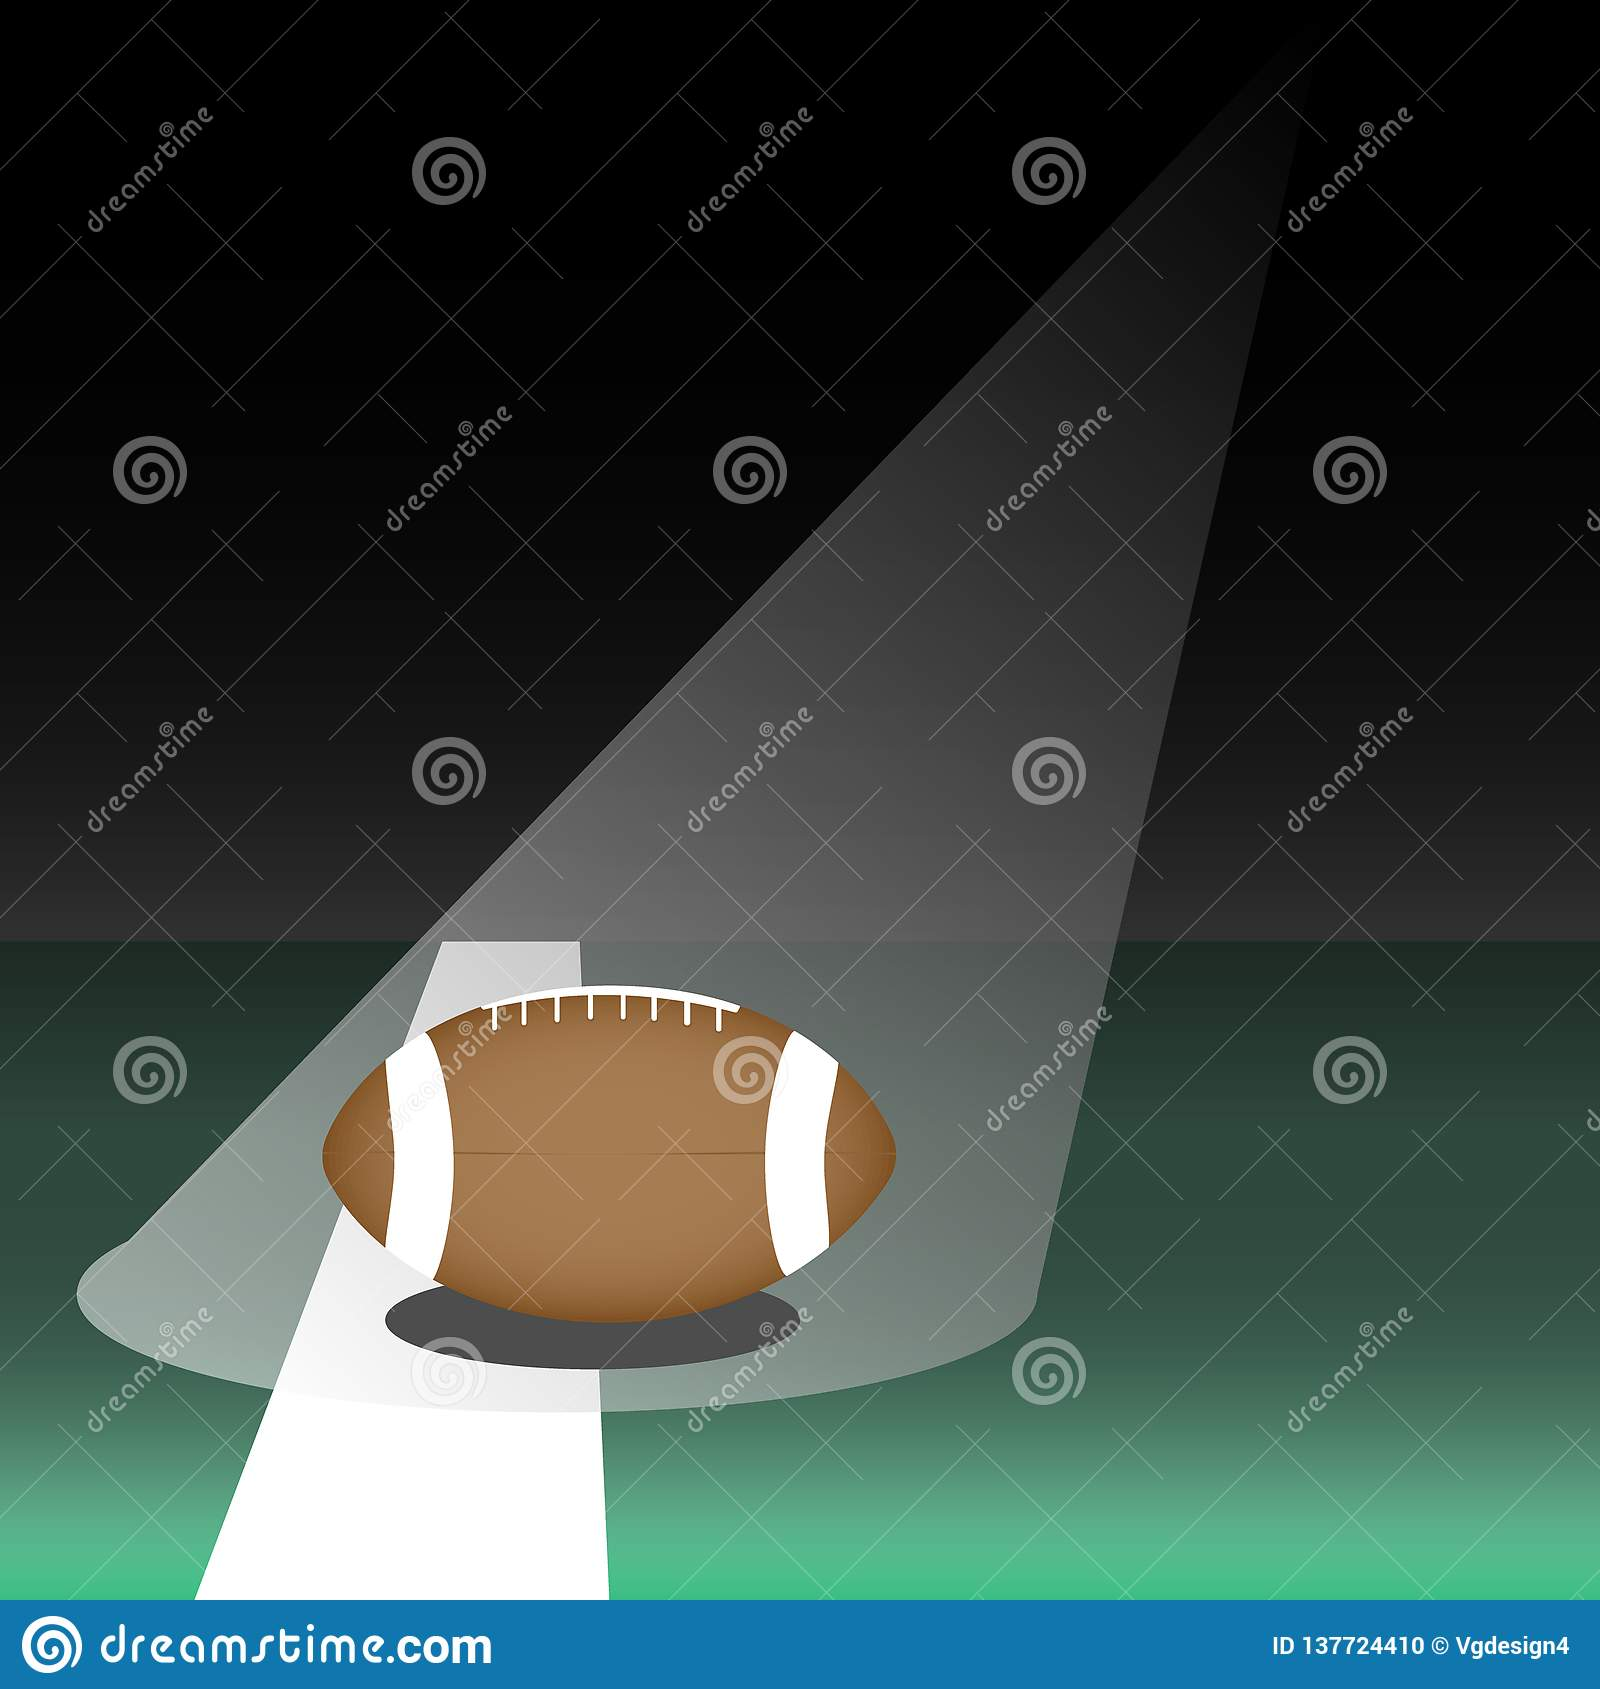 Football ball on green football field highlighted front view